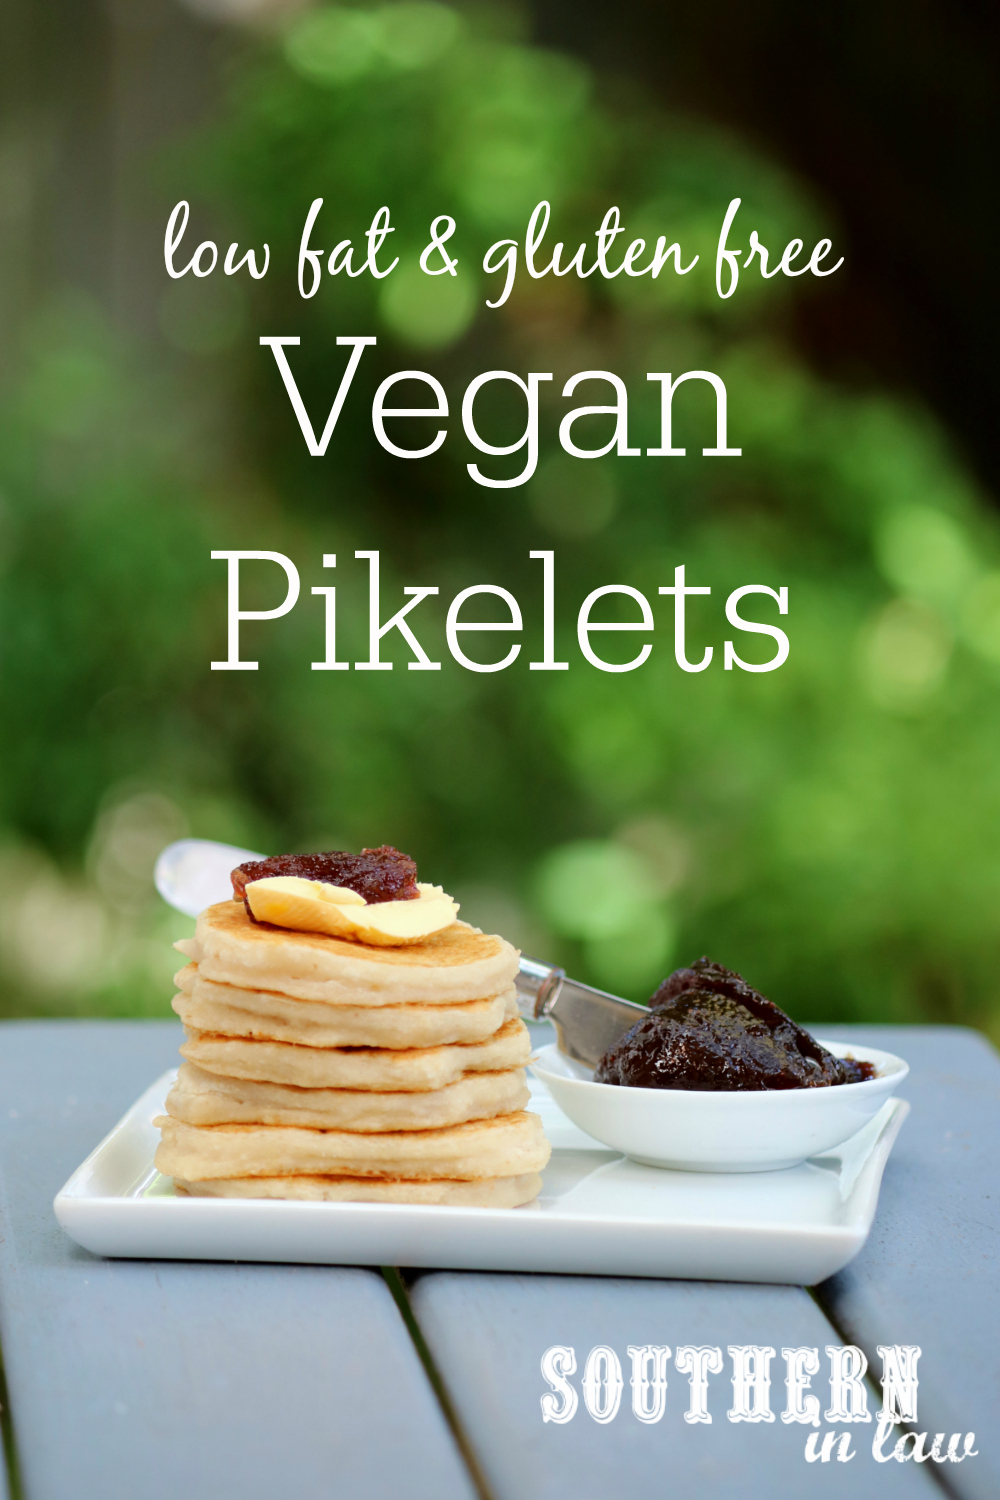 Southern in law recipe easy vegan pikelets gluten free recipe easy vegan pikelets gluten free forumfinder Choice Image